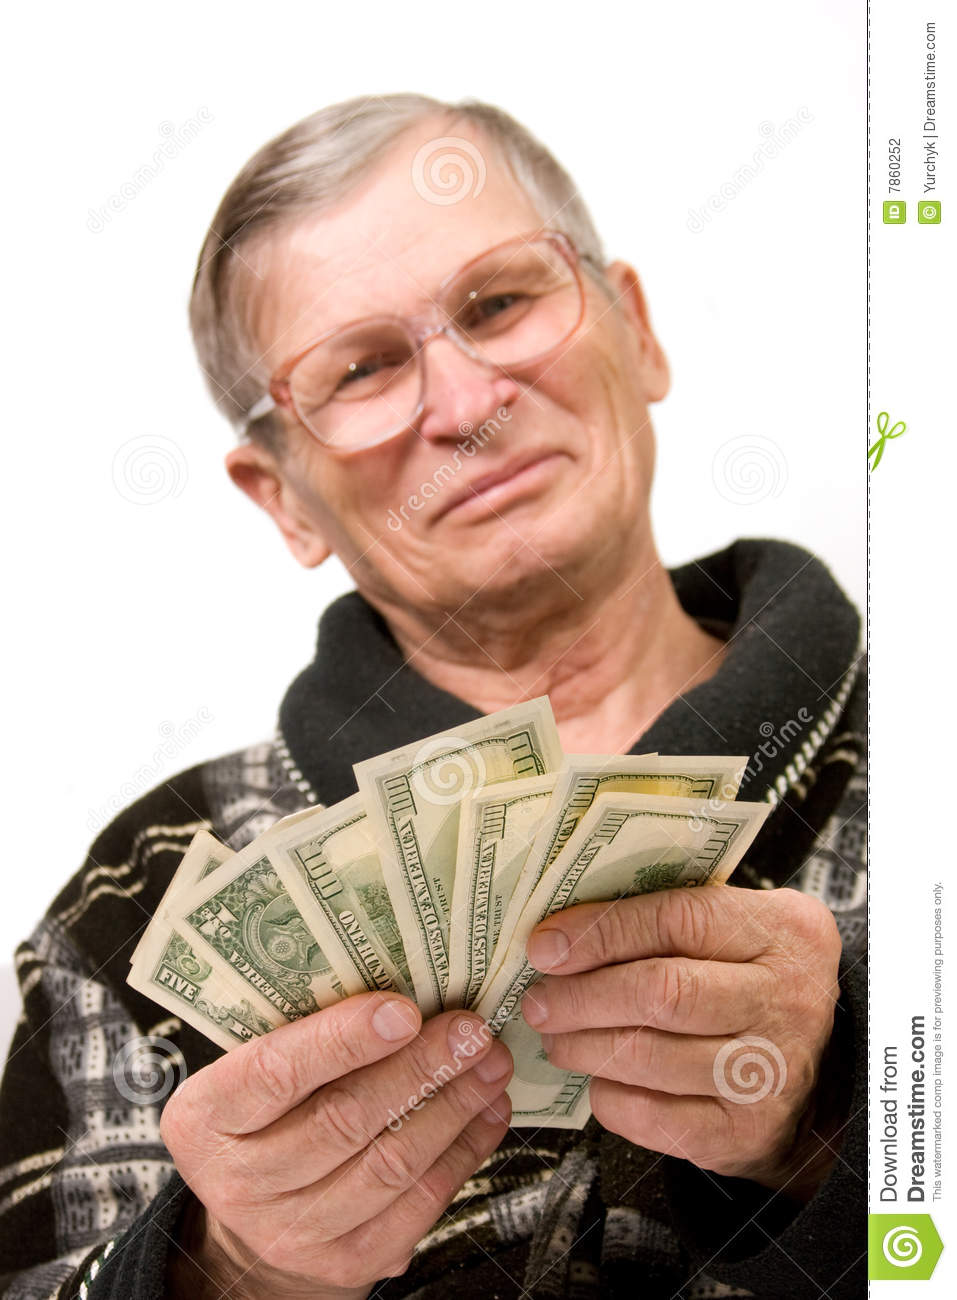 happy-old-man-holding-dollars-7860252.jpg